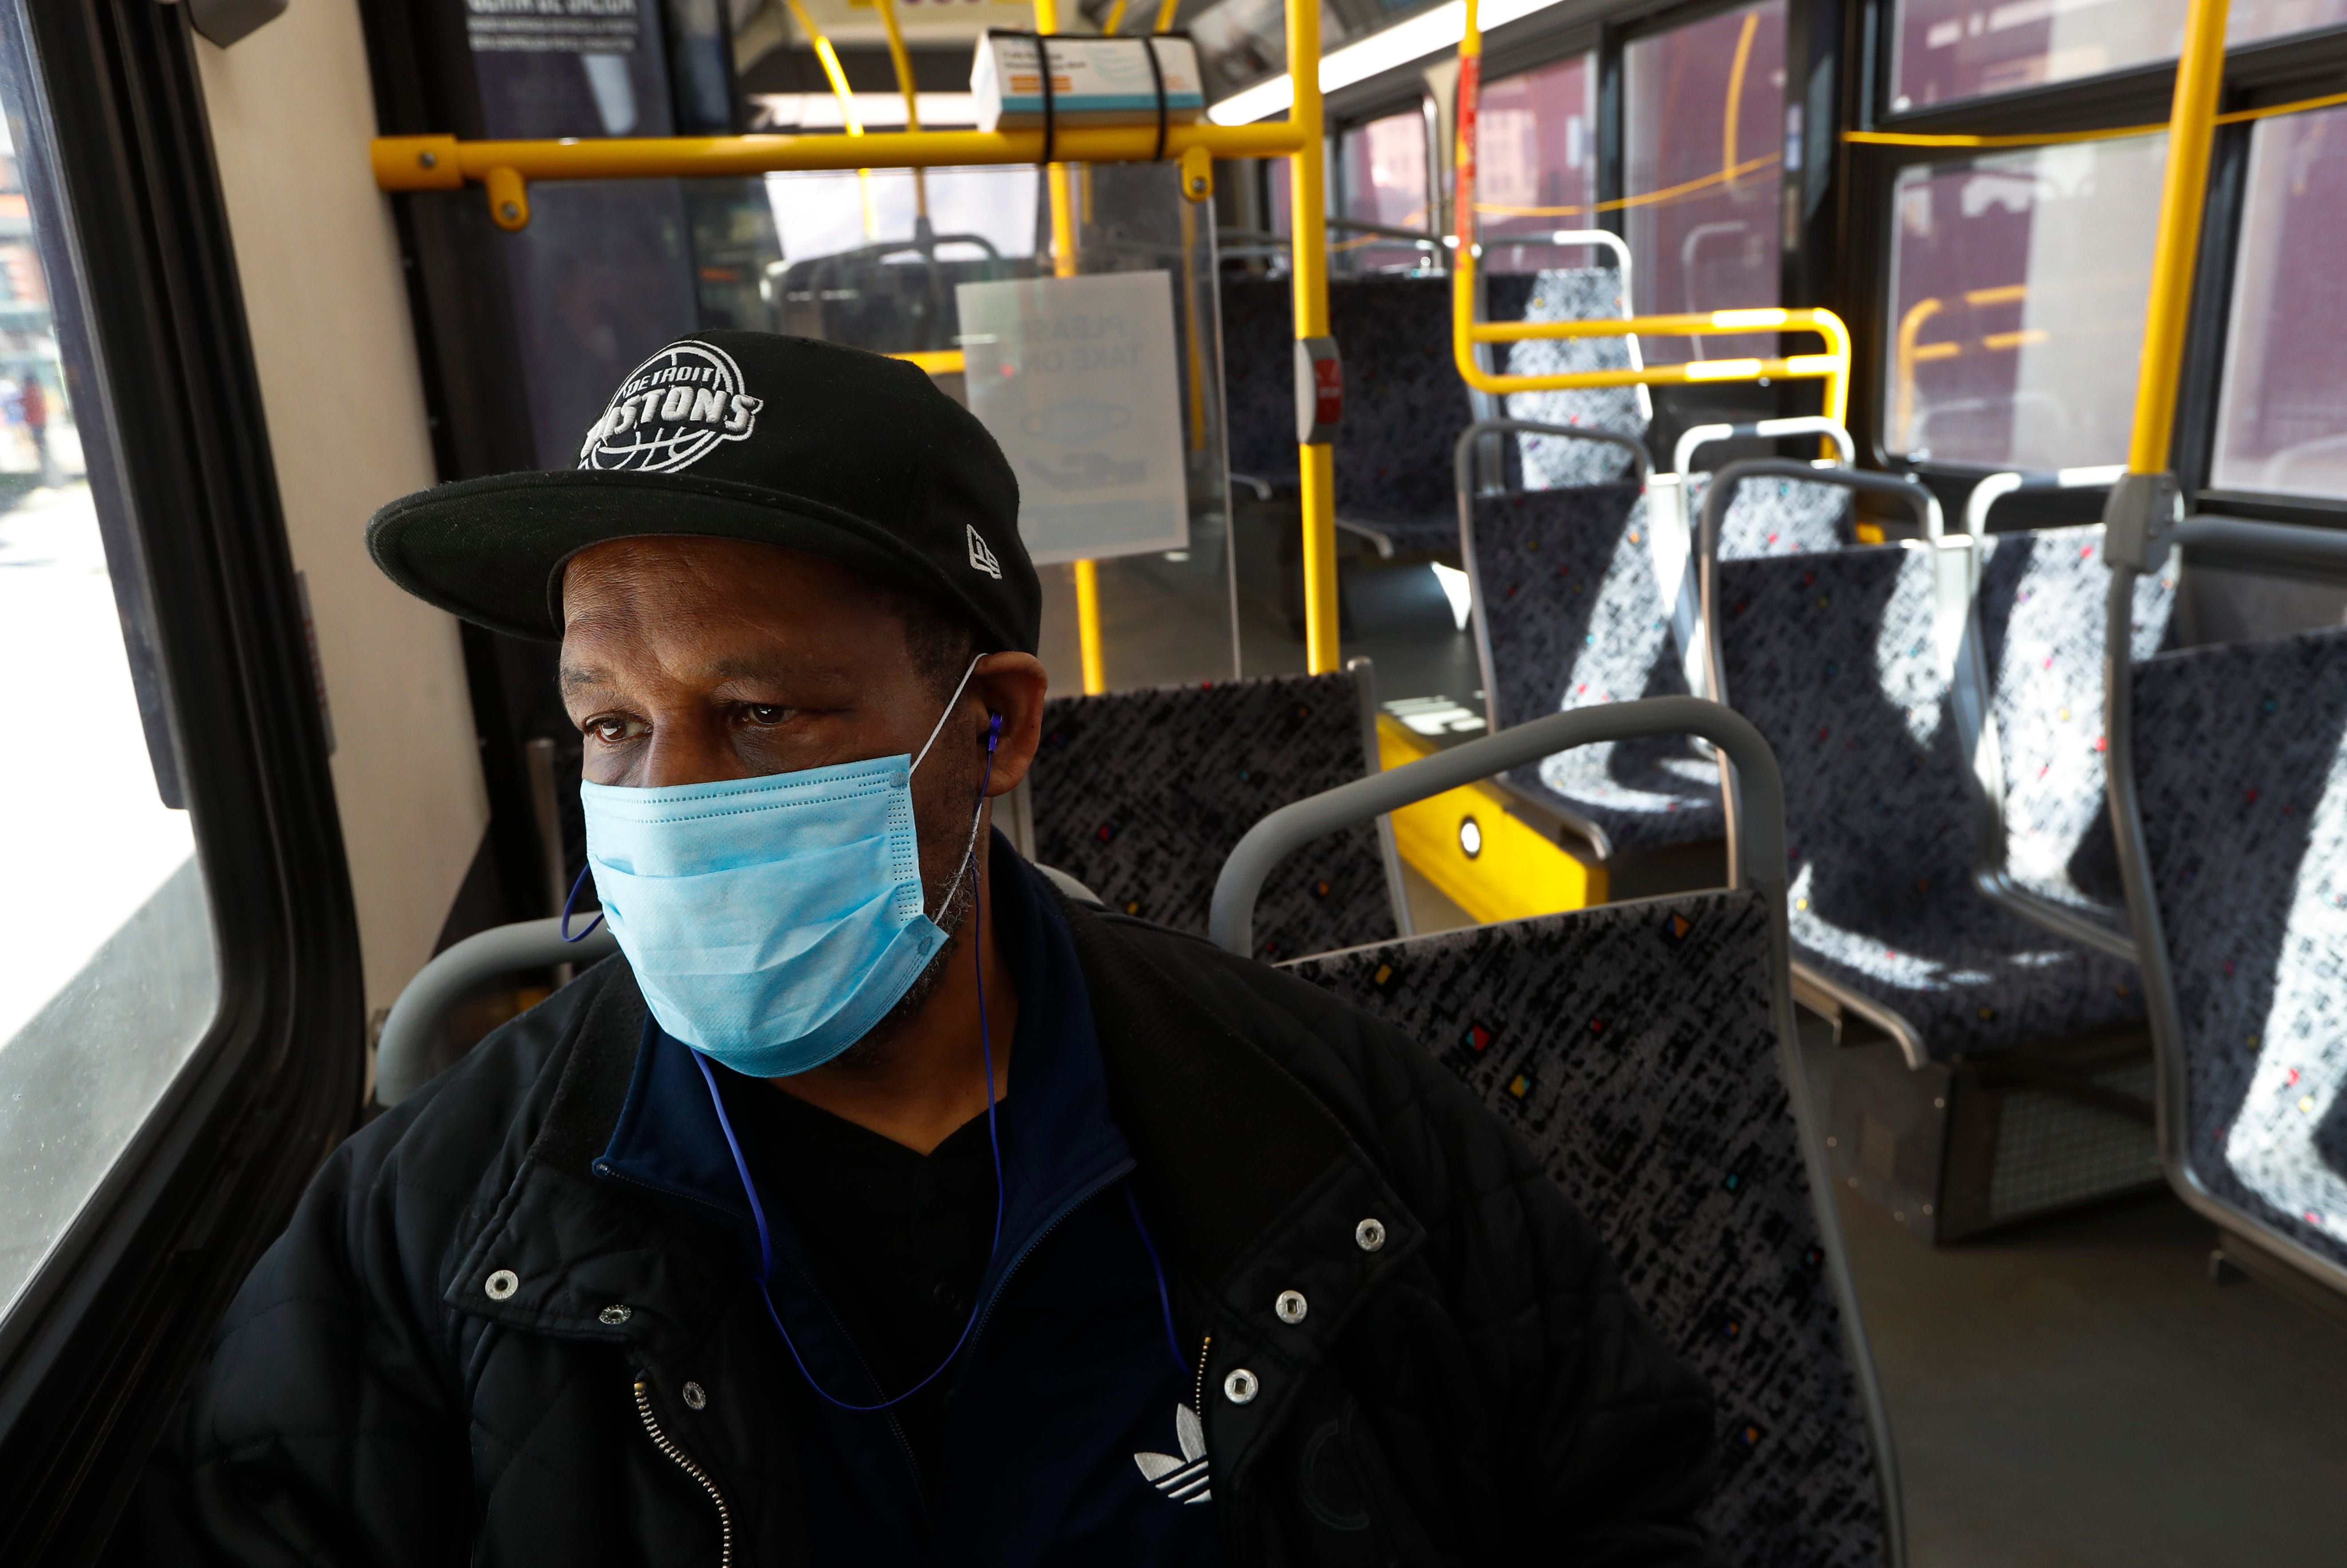 Albert Dowdell wears a protective mask on a bus during the COVID-19 outbreak in Detroit, Wednesday, April 8, 2020.